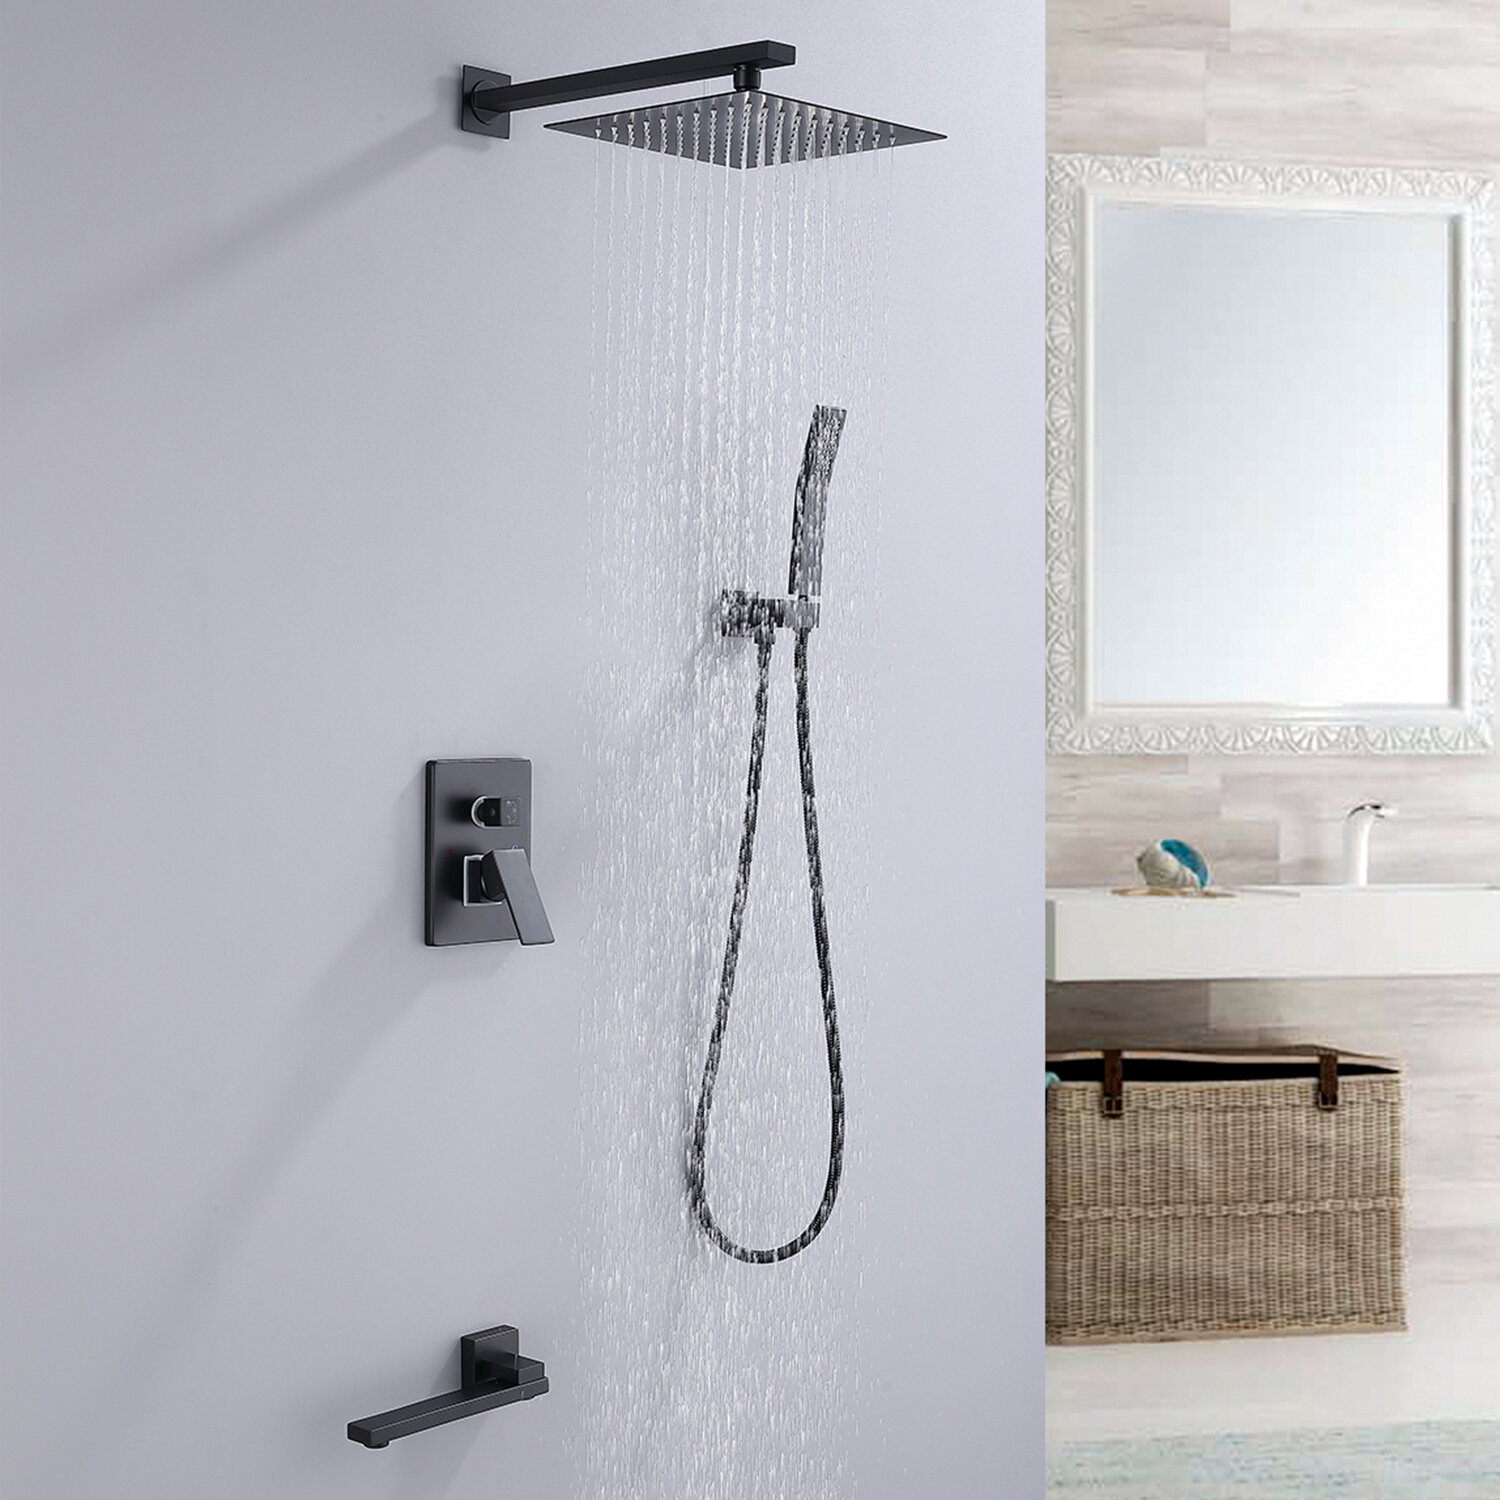 Rbrohant Matte Black Tub And Shower Faucet Set Rough In Valve Included Wayfair Ca